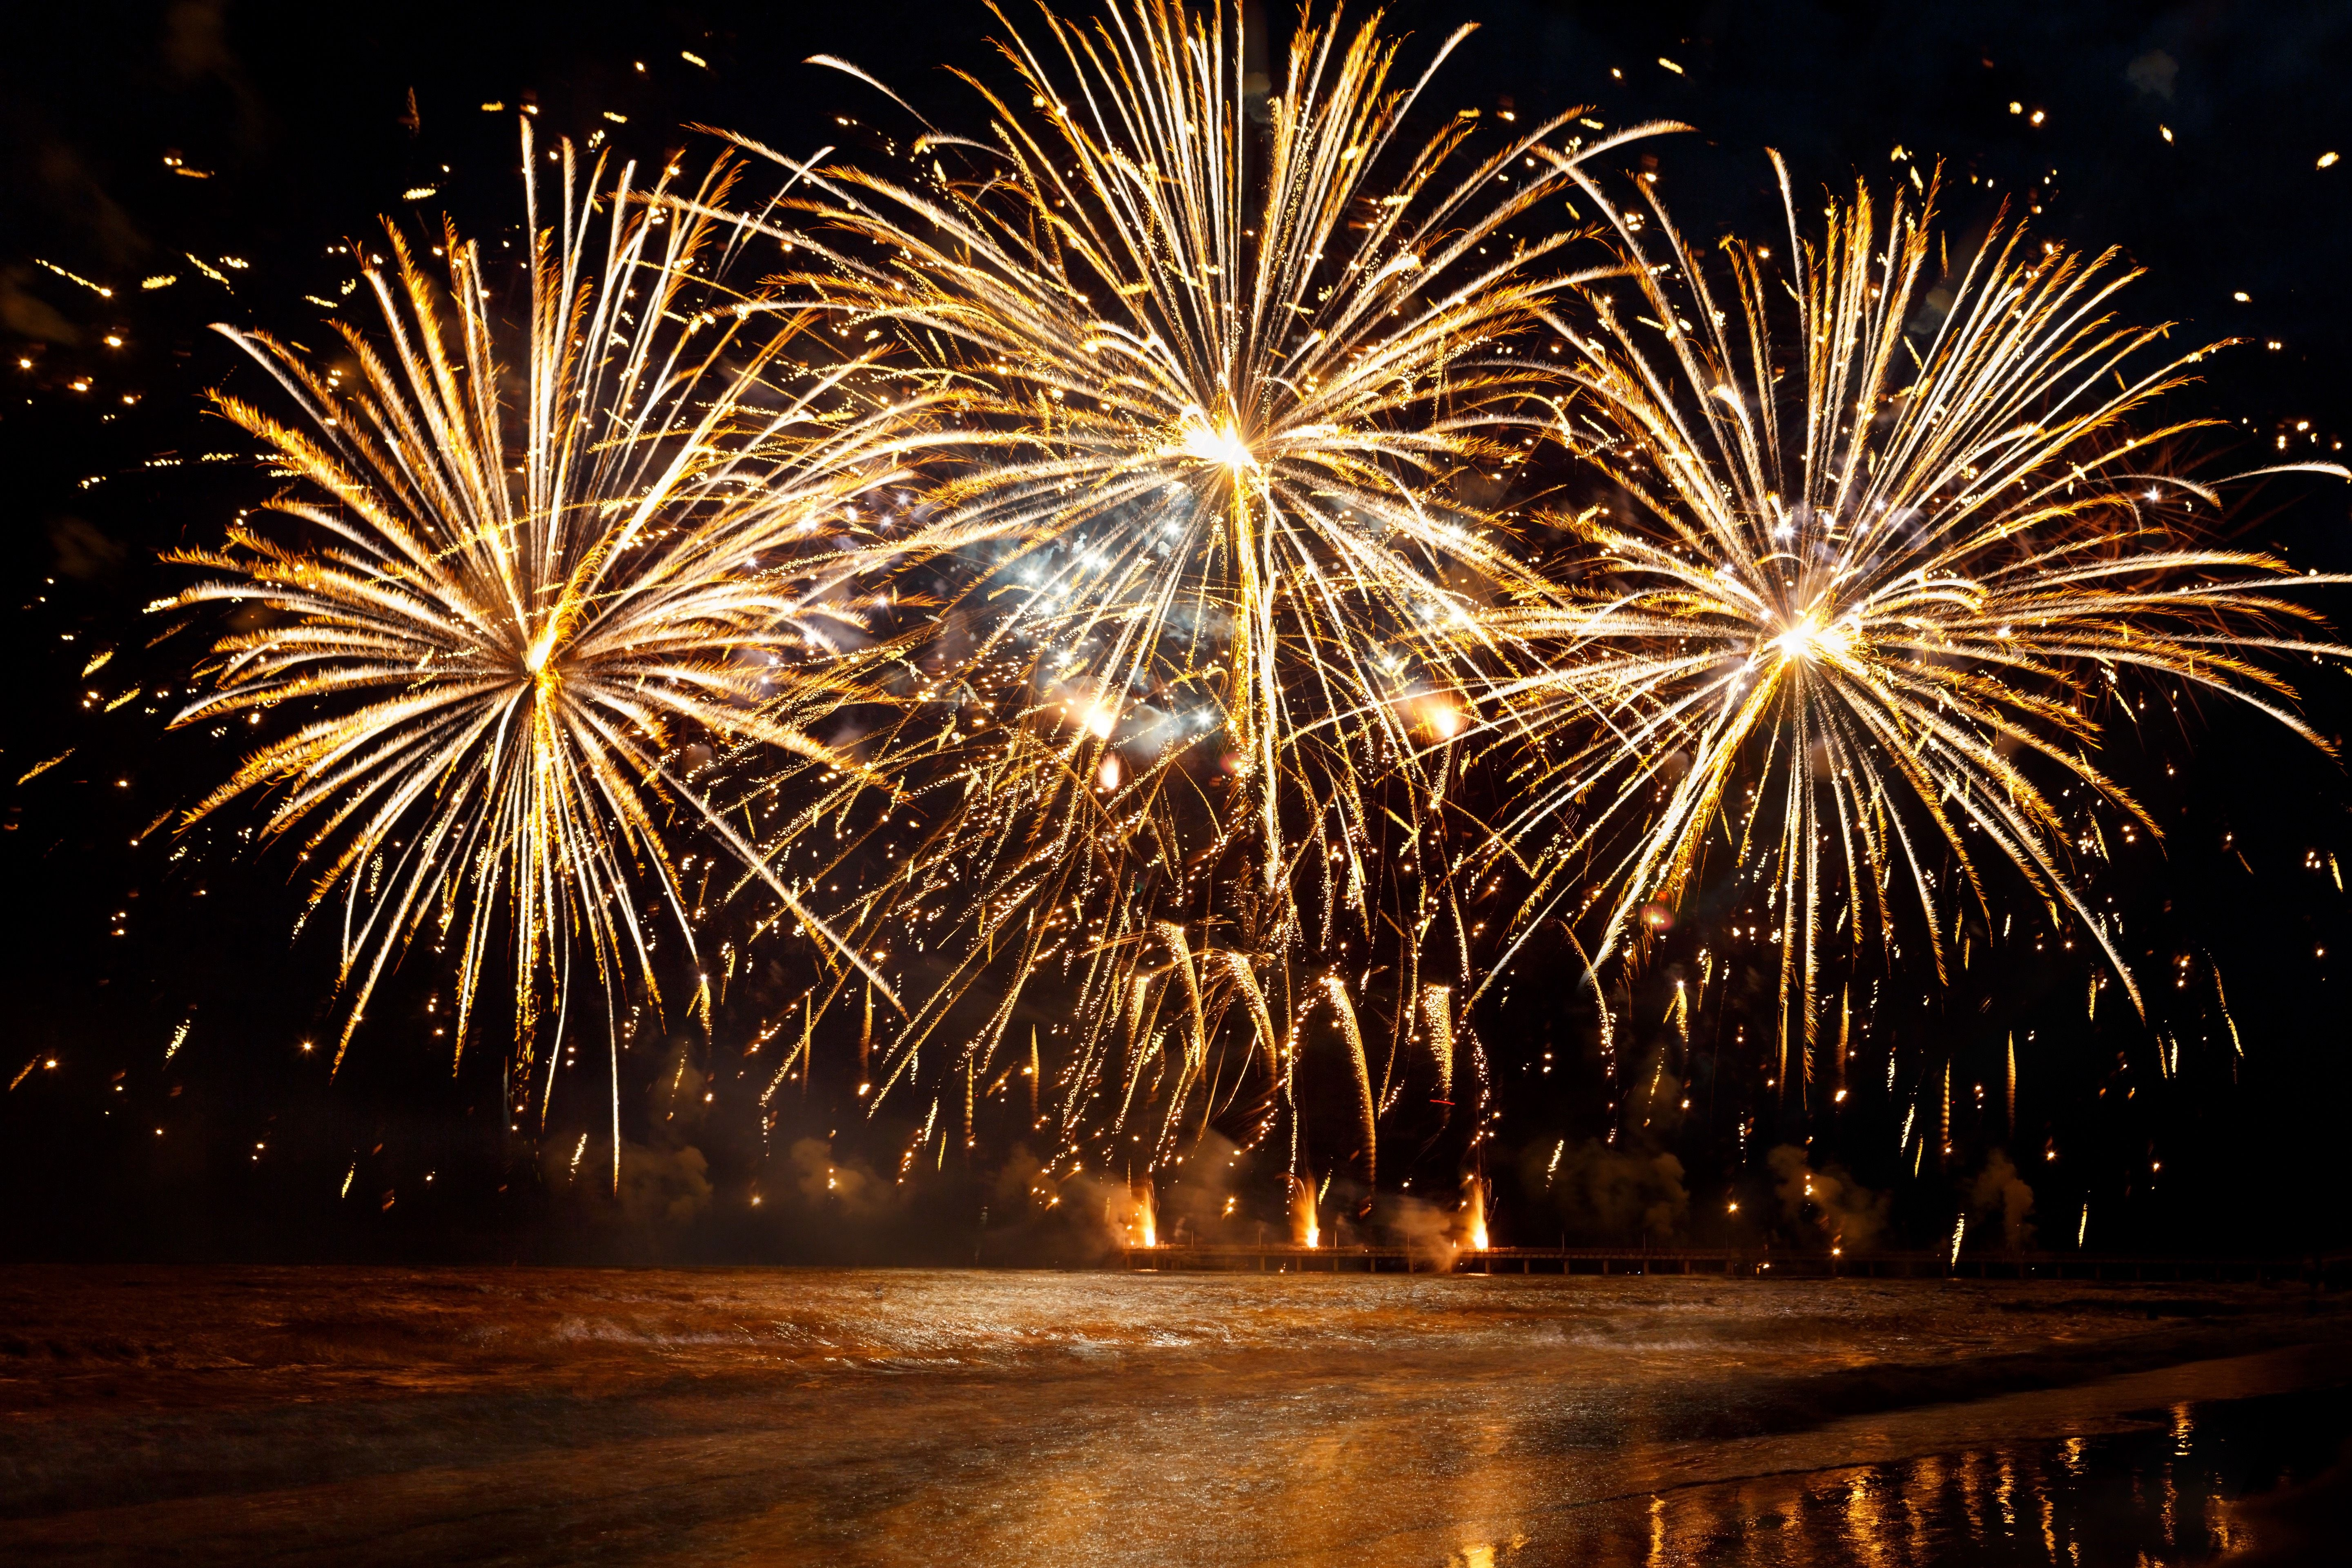 Best 4th of July Trivia - 17 Facts About the 4th of July